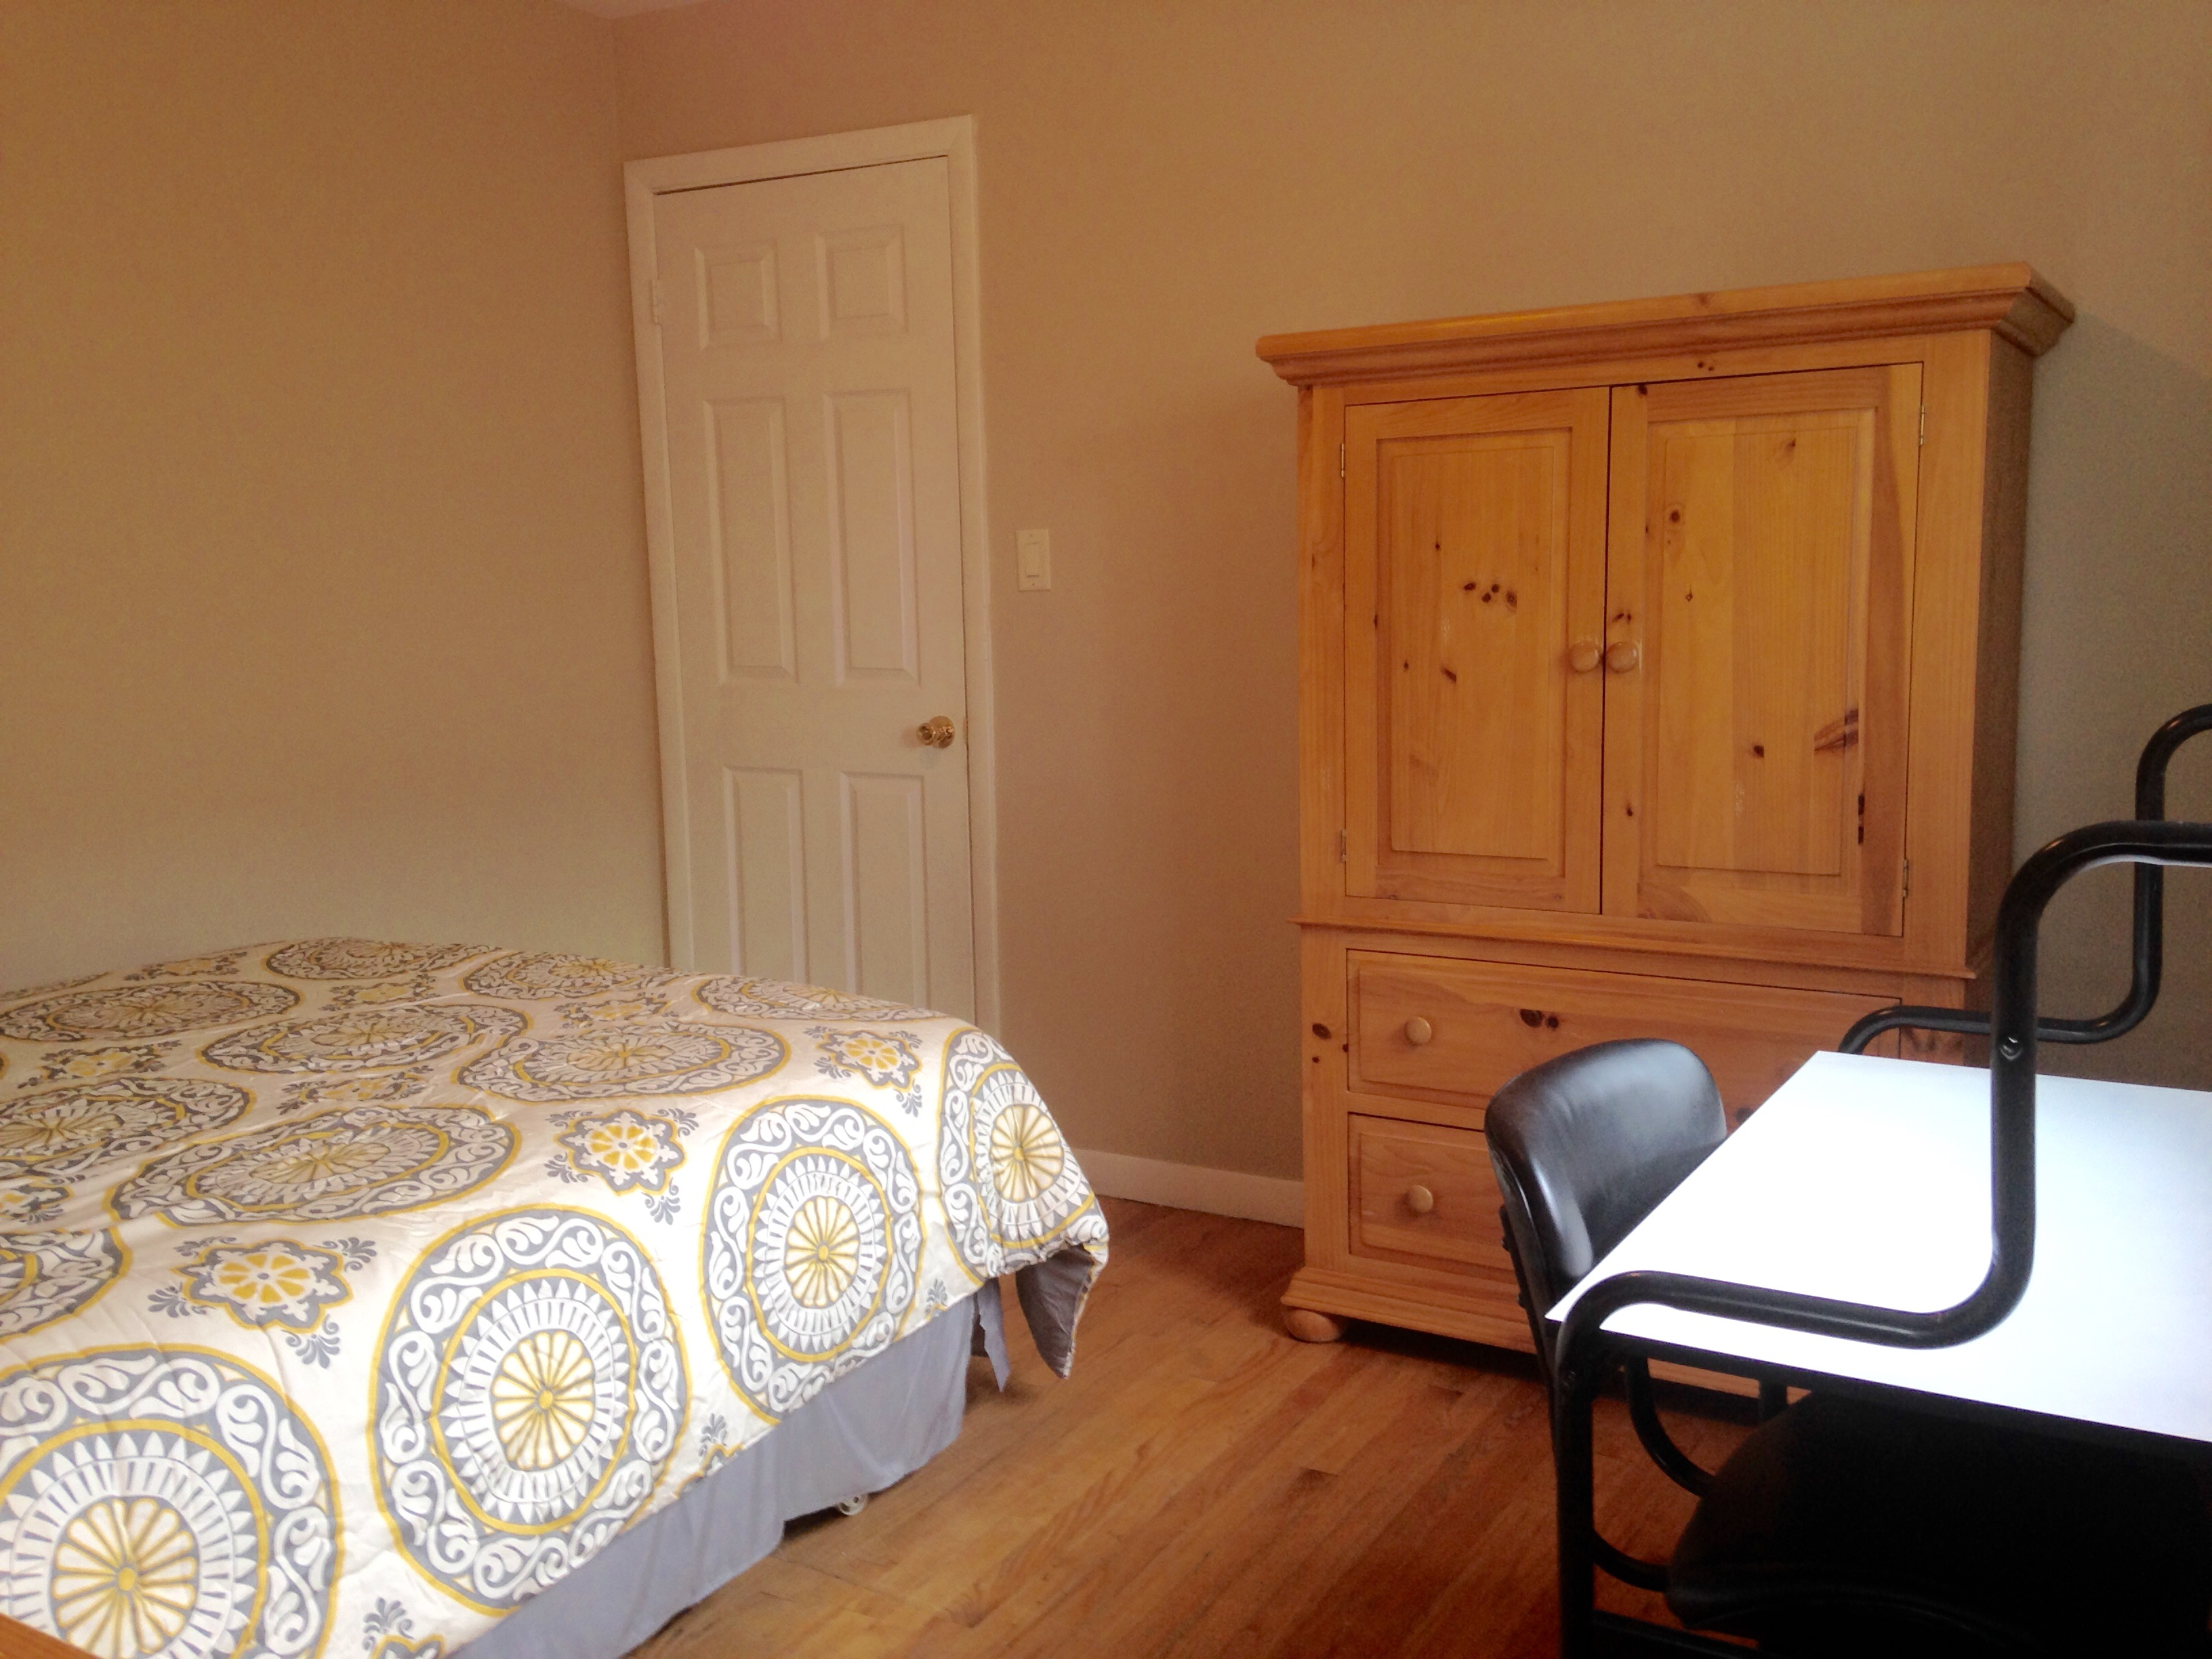 Room for Rent Medical Externship Stay in Chicago Area